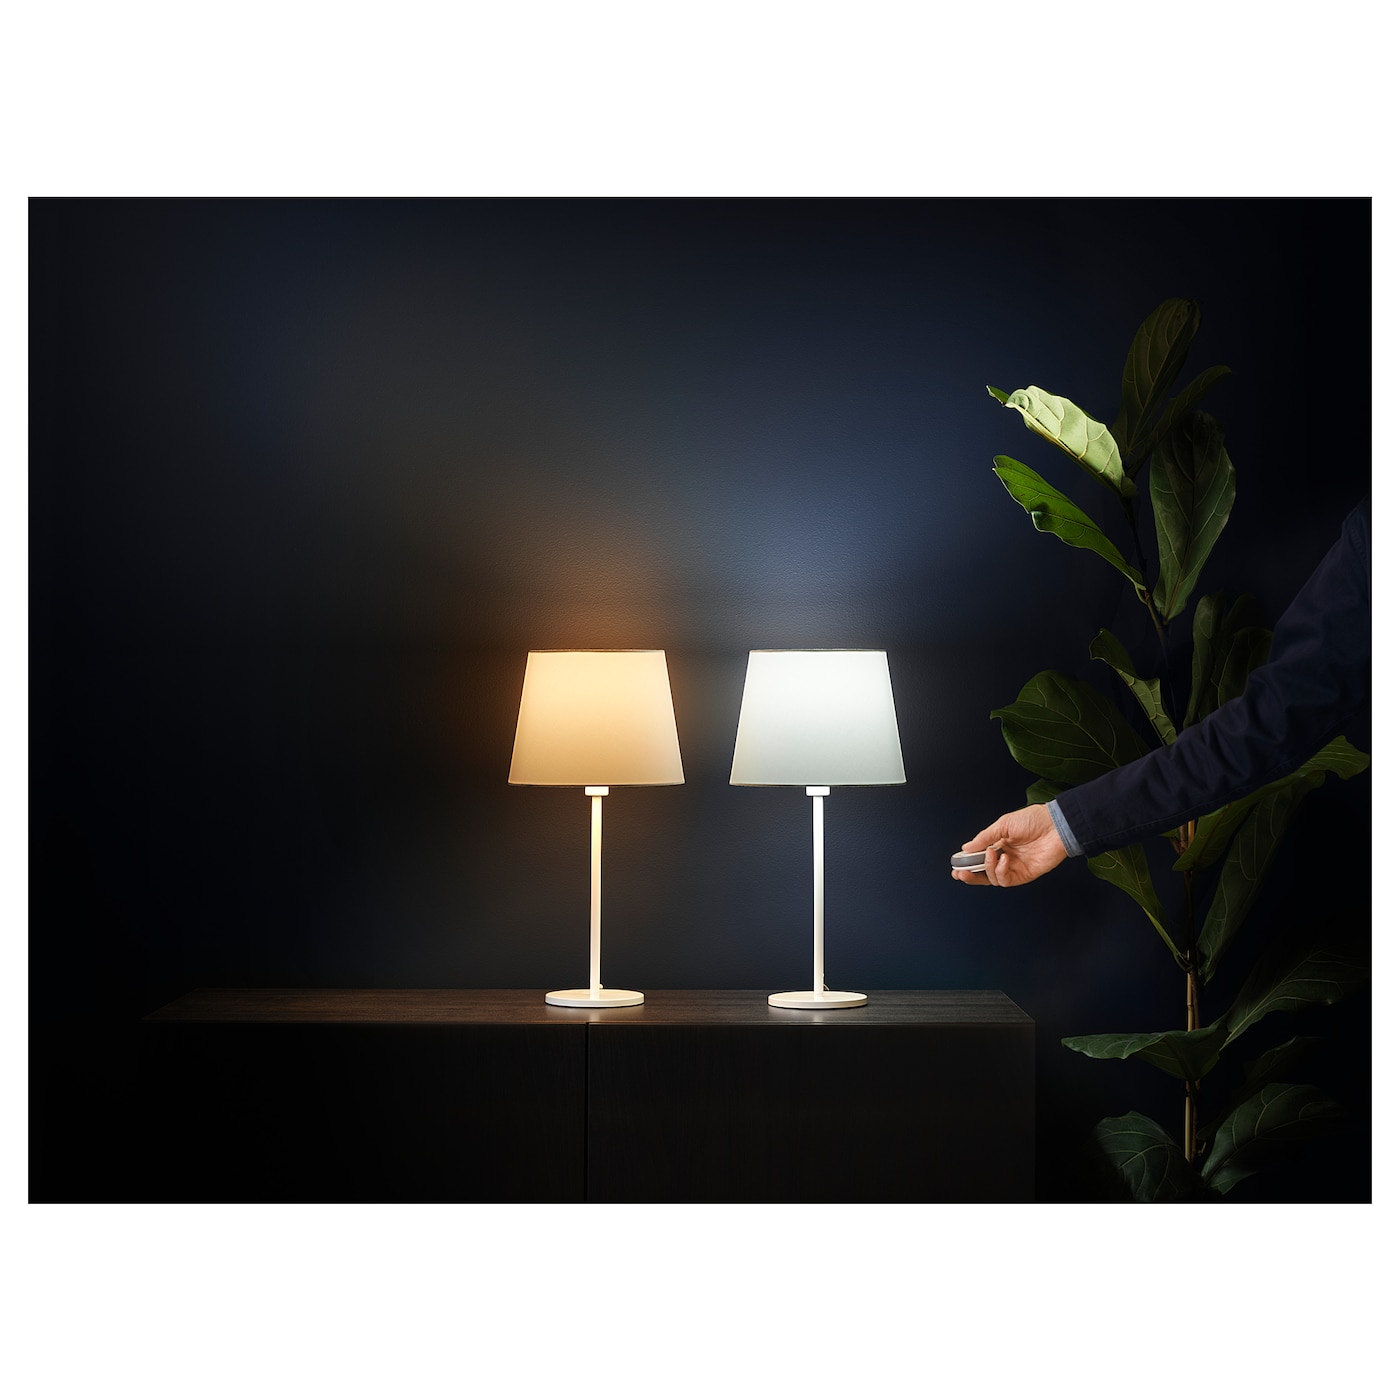 IKEA TRÅDFRI dimming kit